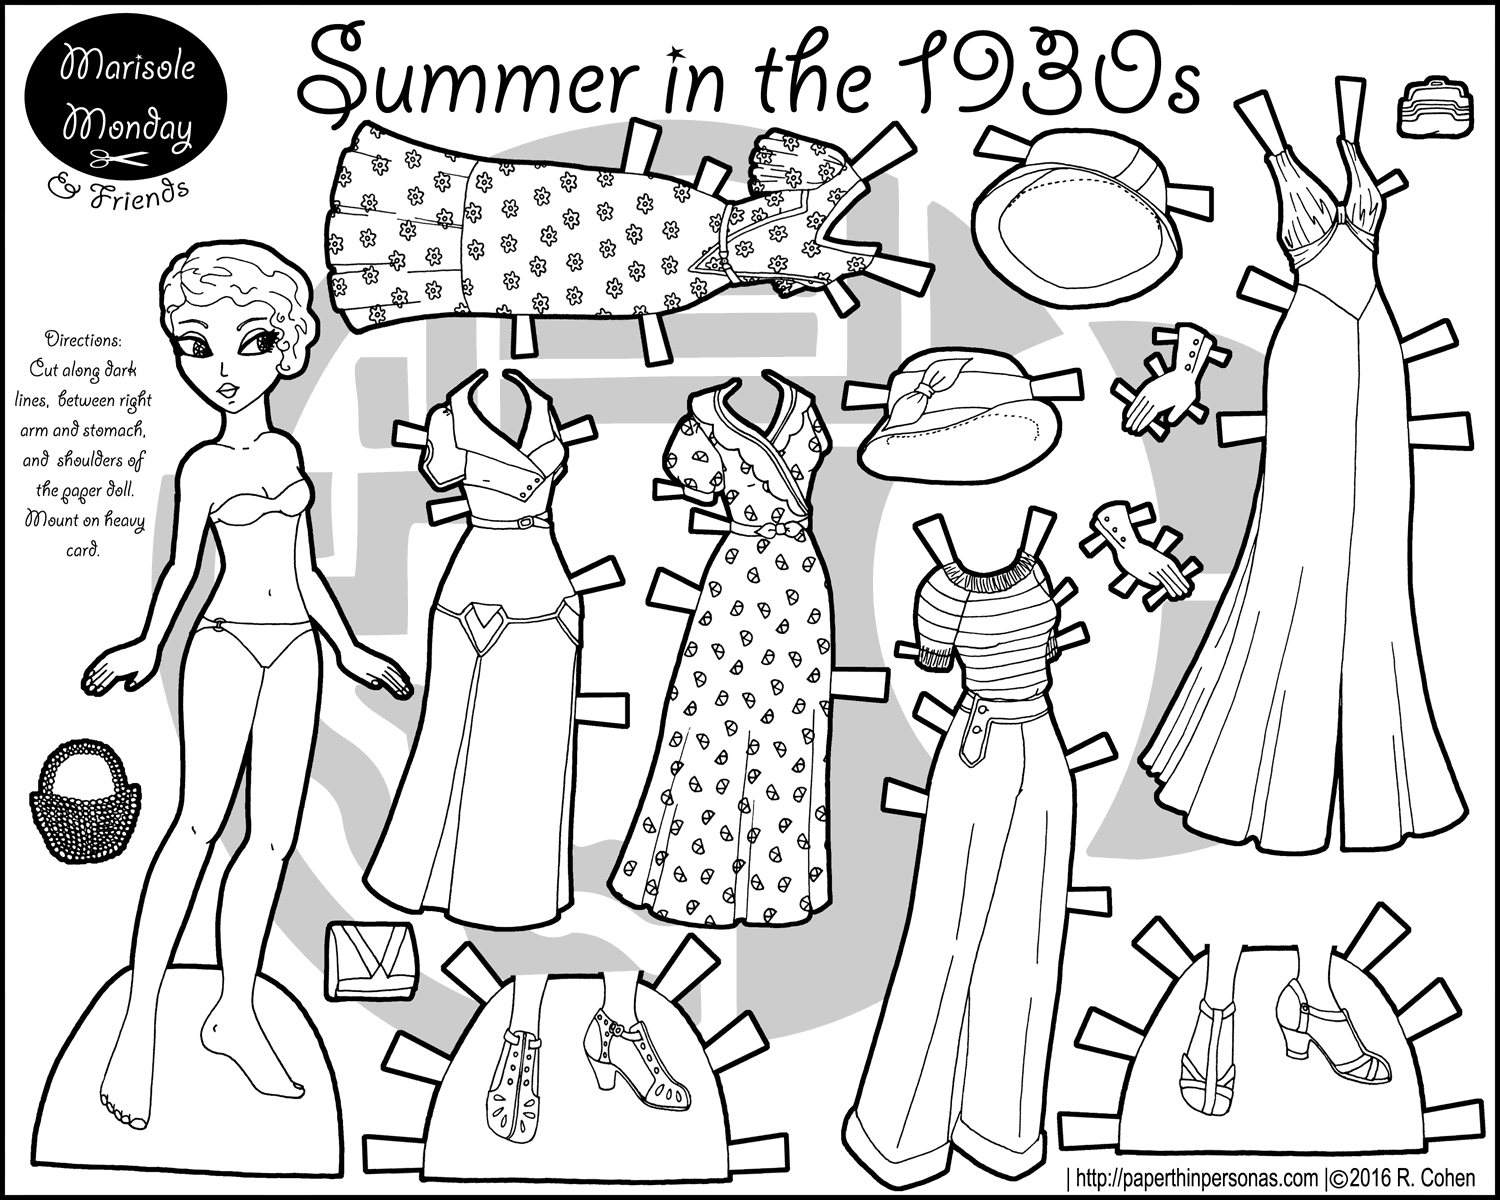 a paper doll coloring page celebrating the 1930s with a five piece wardrobe hats and - Paper Doll Coloring Pages